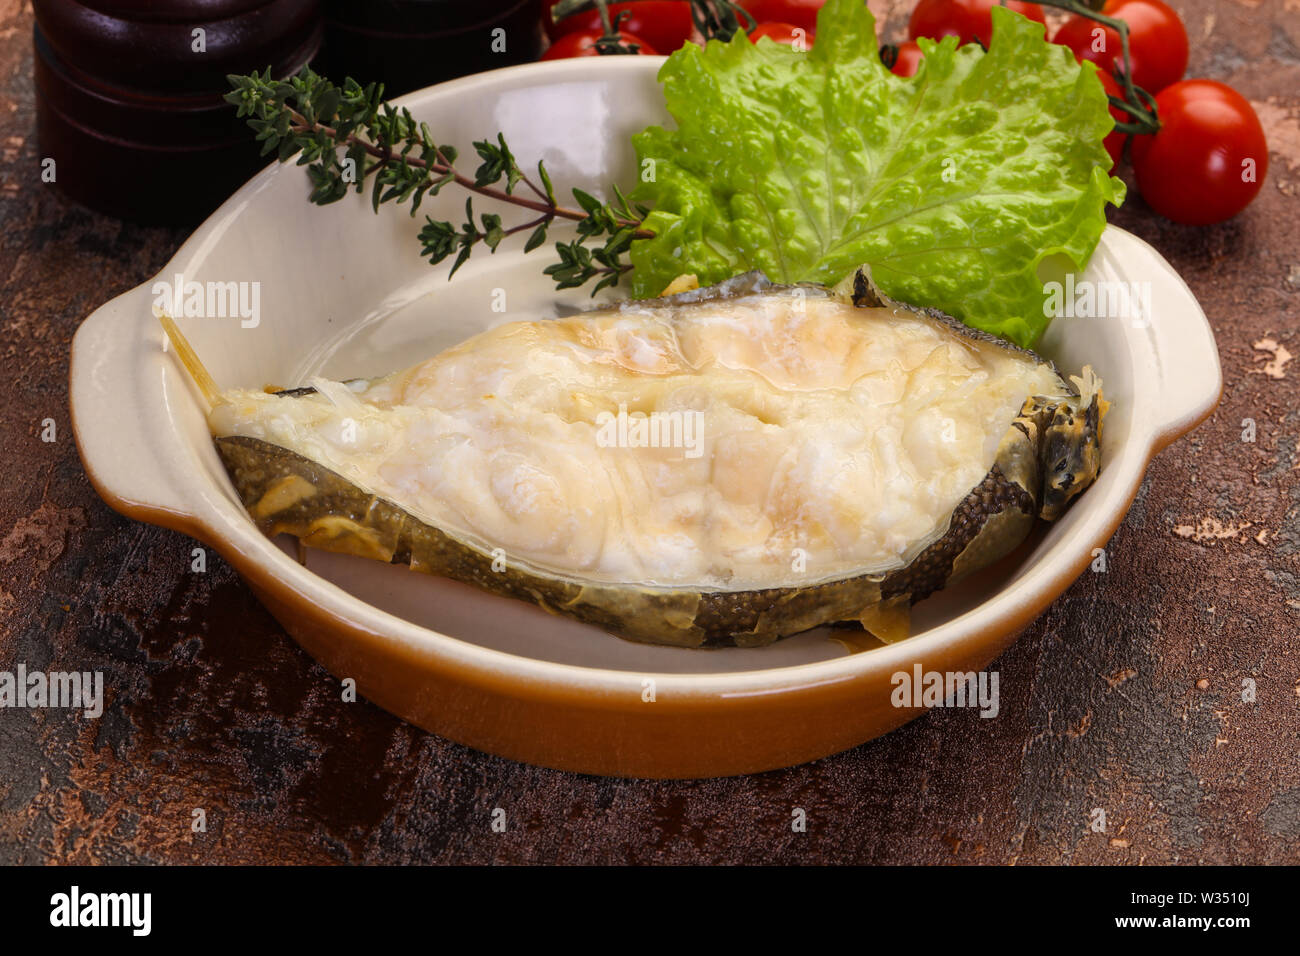 Baked wolffish steak with salad leaves - Stock Image